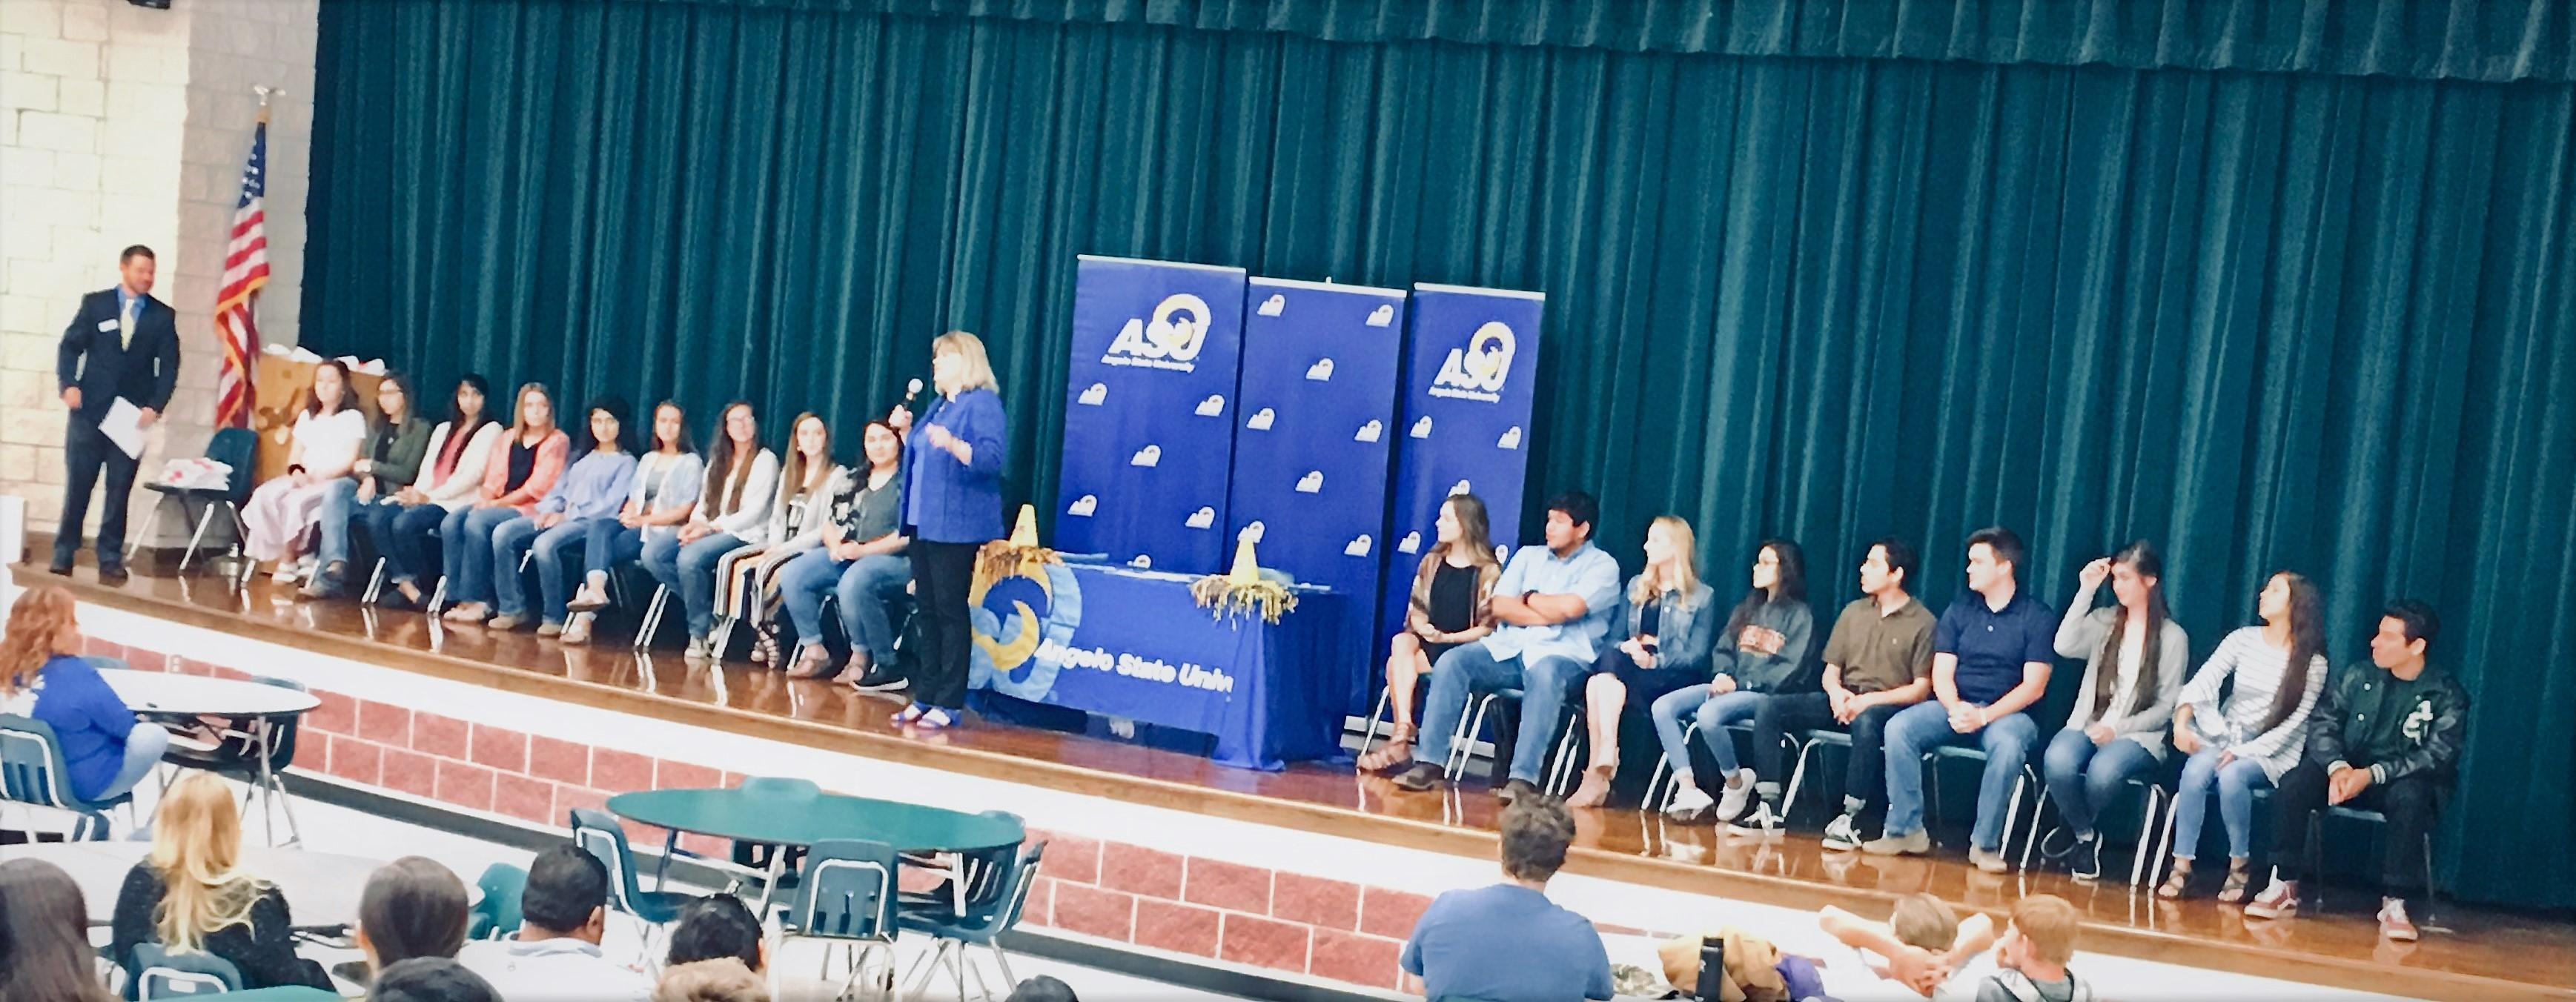 Grape Creek High Seniors Signing ASU Carr Scholarship and Intent Letters Ceremony